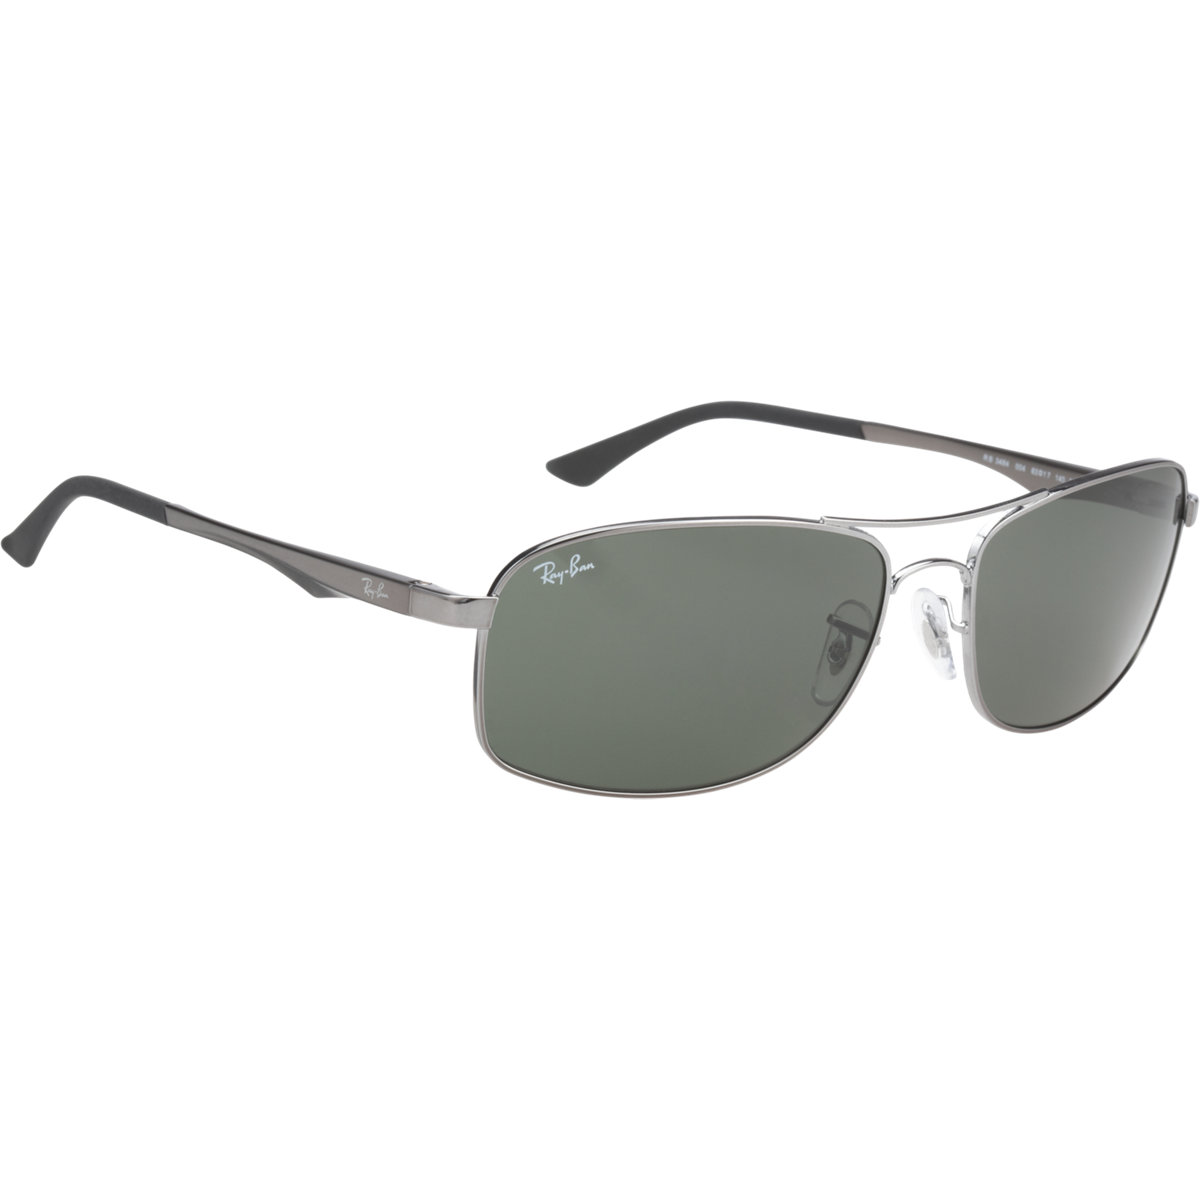 Ray Ban Silver Frame Glasses : Ray-ban Rectangle Frame Sunglasses in Silver for Men ...